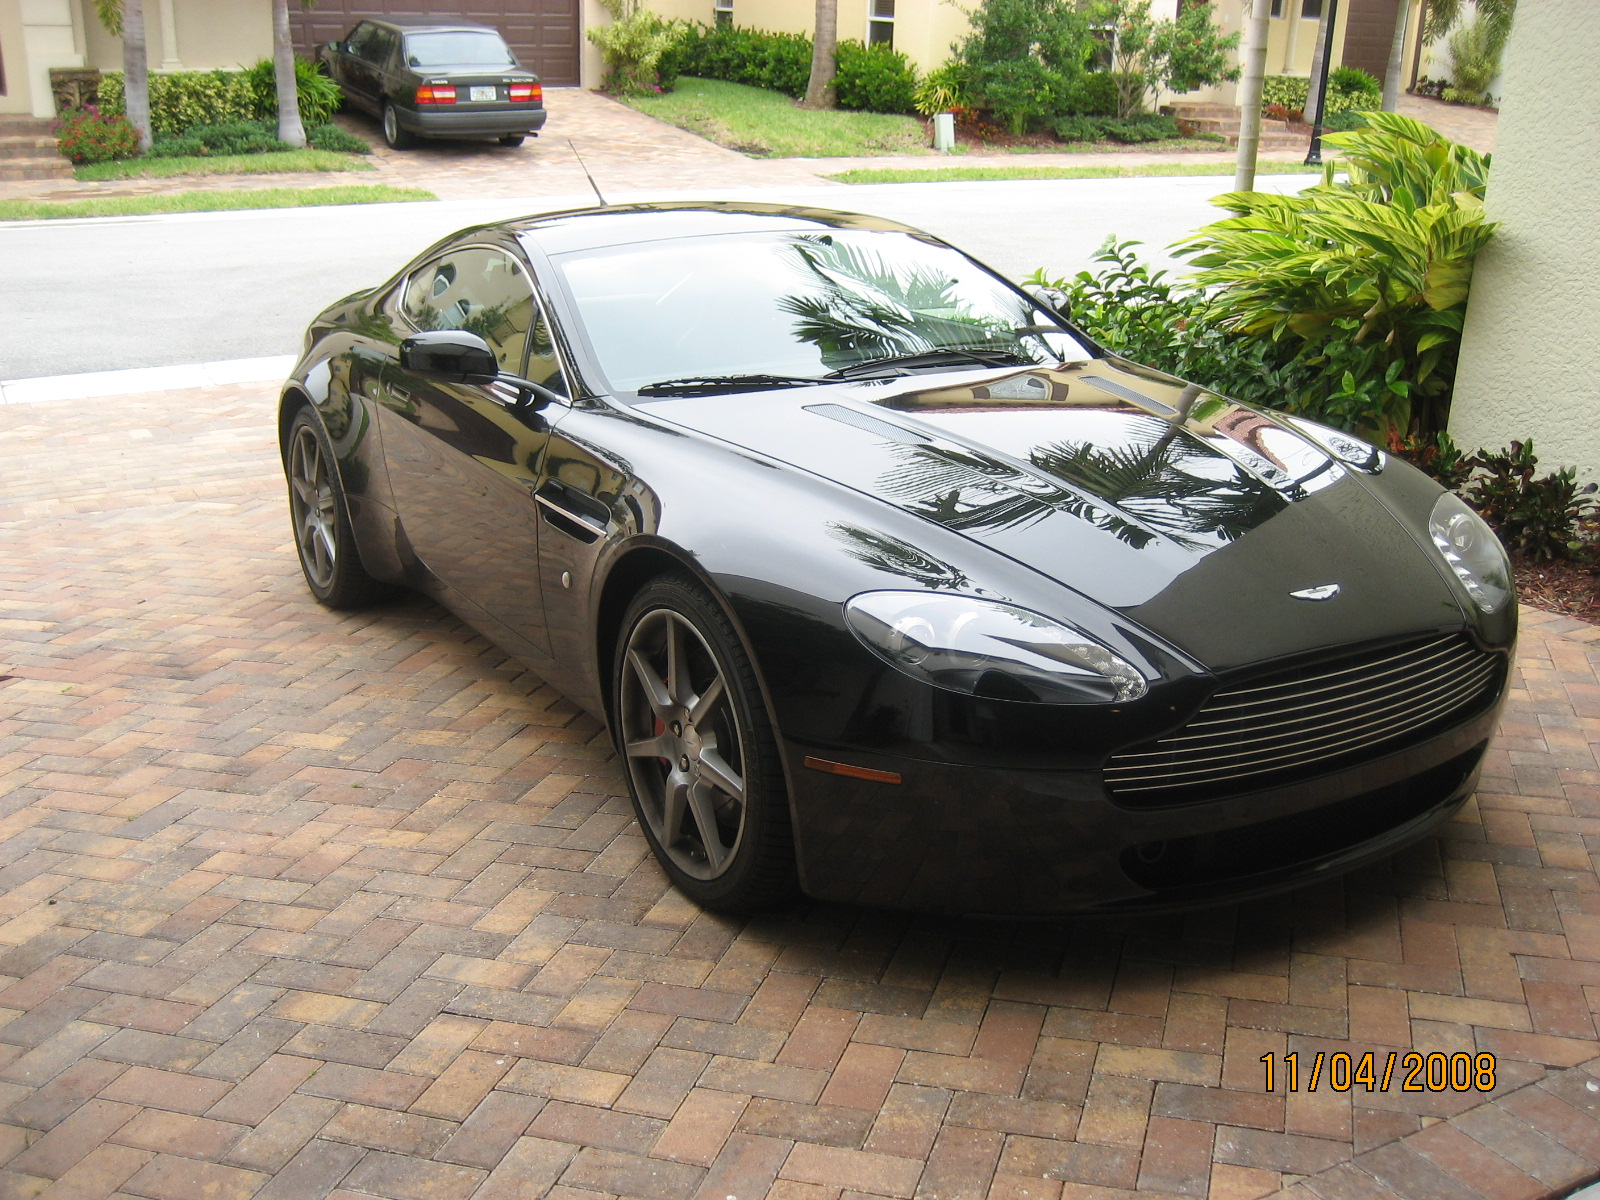 2007 aston martin v8 vantage exterior pictures cargurus. Cars Review. Best American Auto & Cars Review